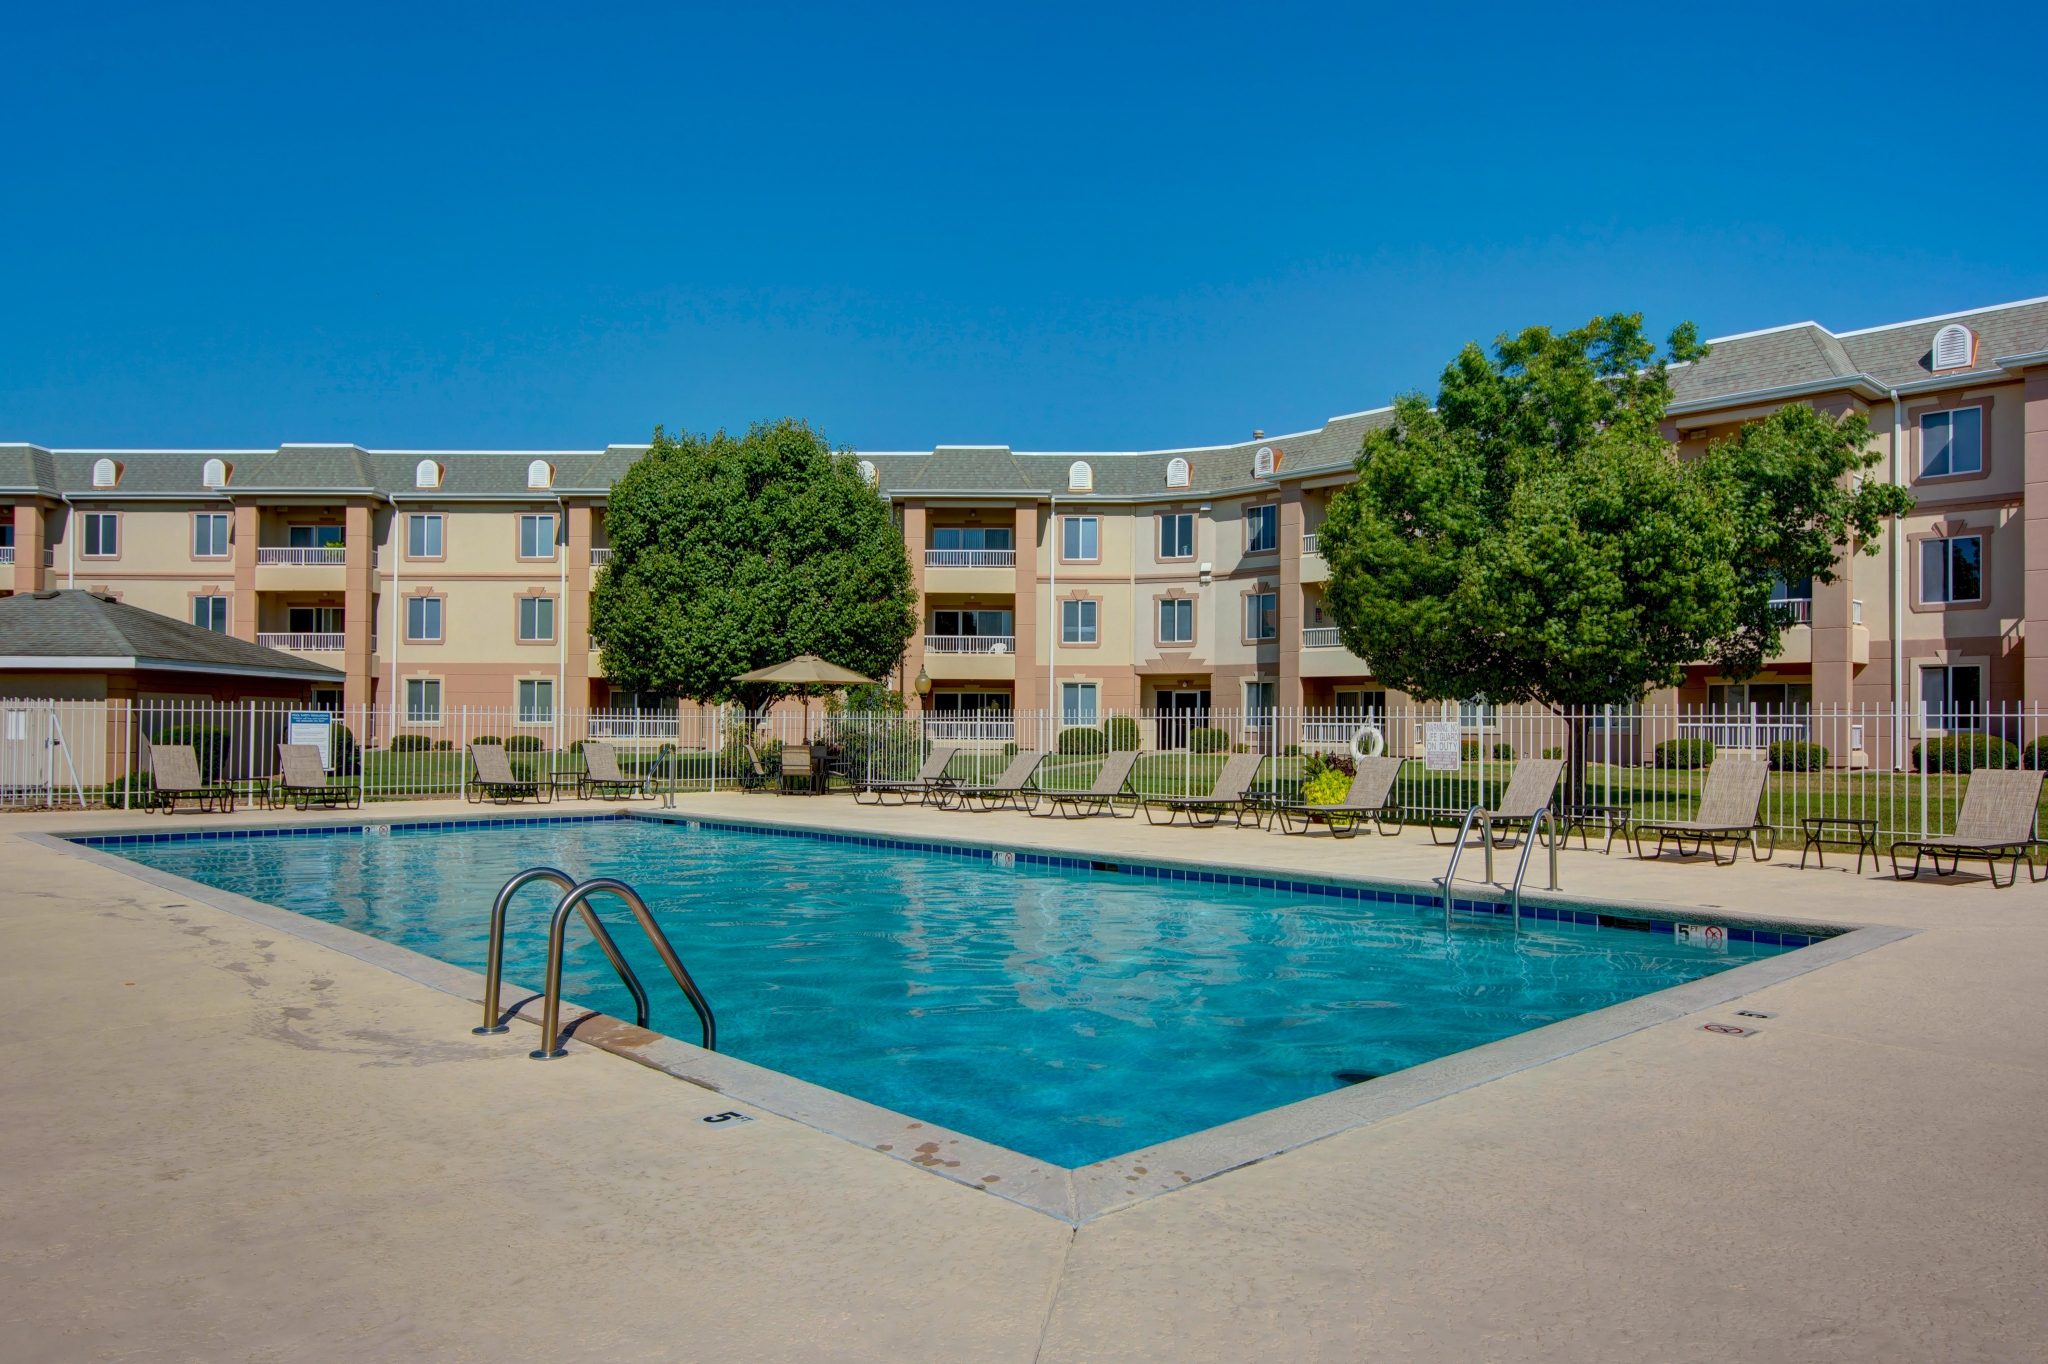 The Abbey - TLC Properties - Apartments Springfield, MO - Pool - Swimming Pool - Outdoor Pool